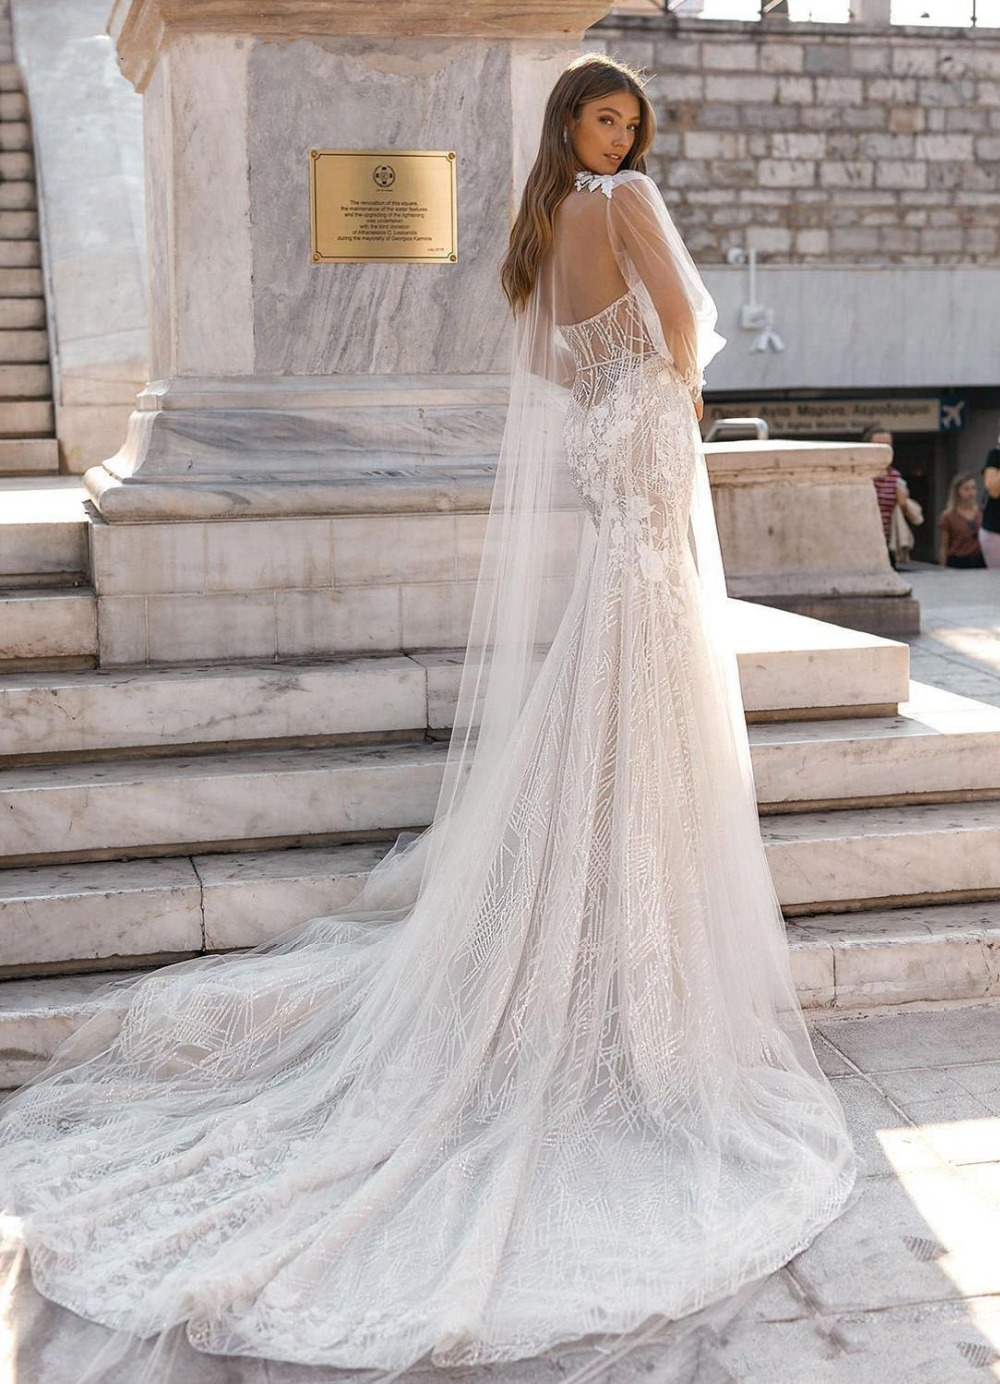 Newest-Shinny-Mermaid-Wedding-Dress-with-Wrap-NEW-Sexy-Long-Sleeve-Lace-Appliqued-Bacless-Sweetheart-Beach (2)